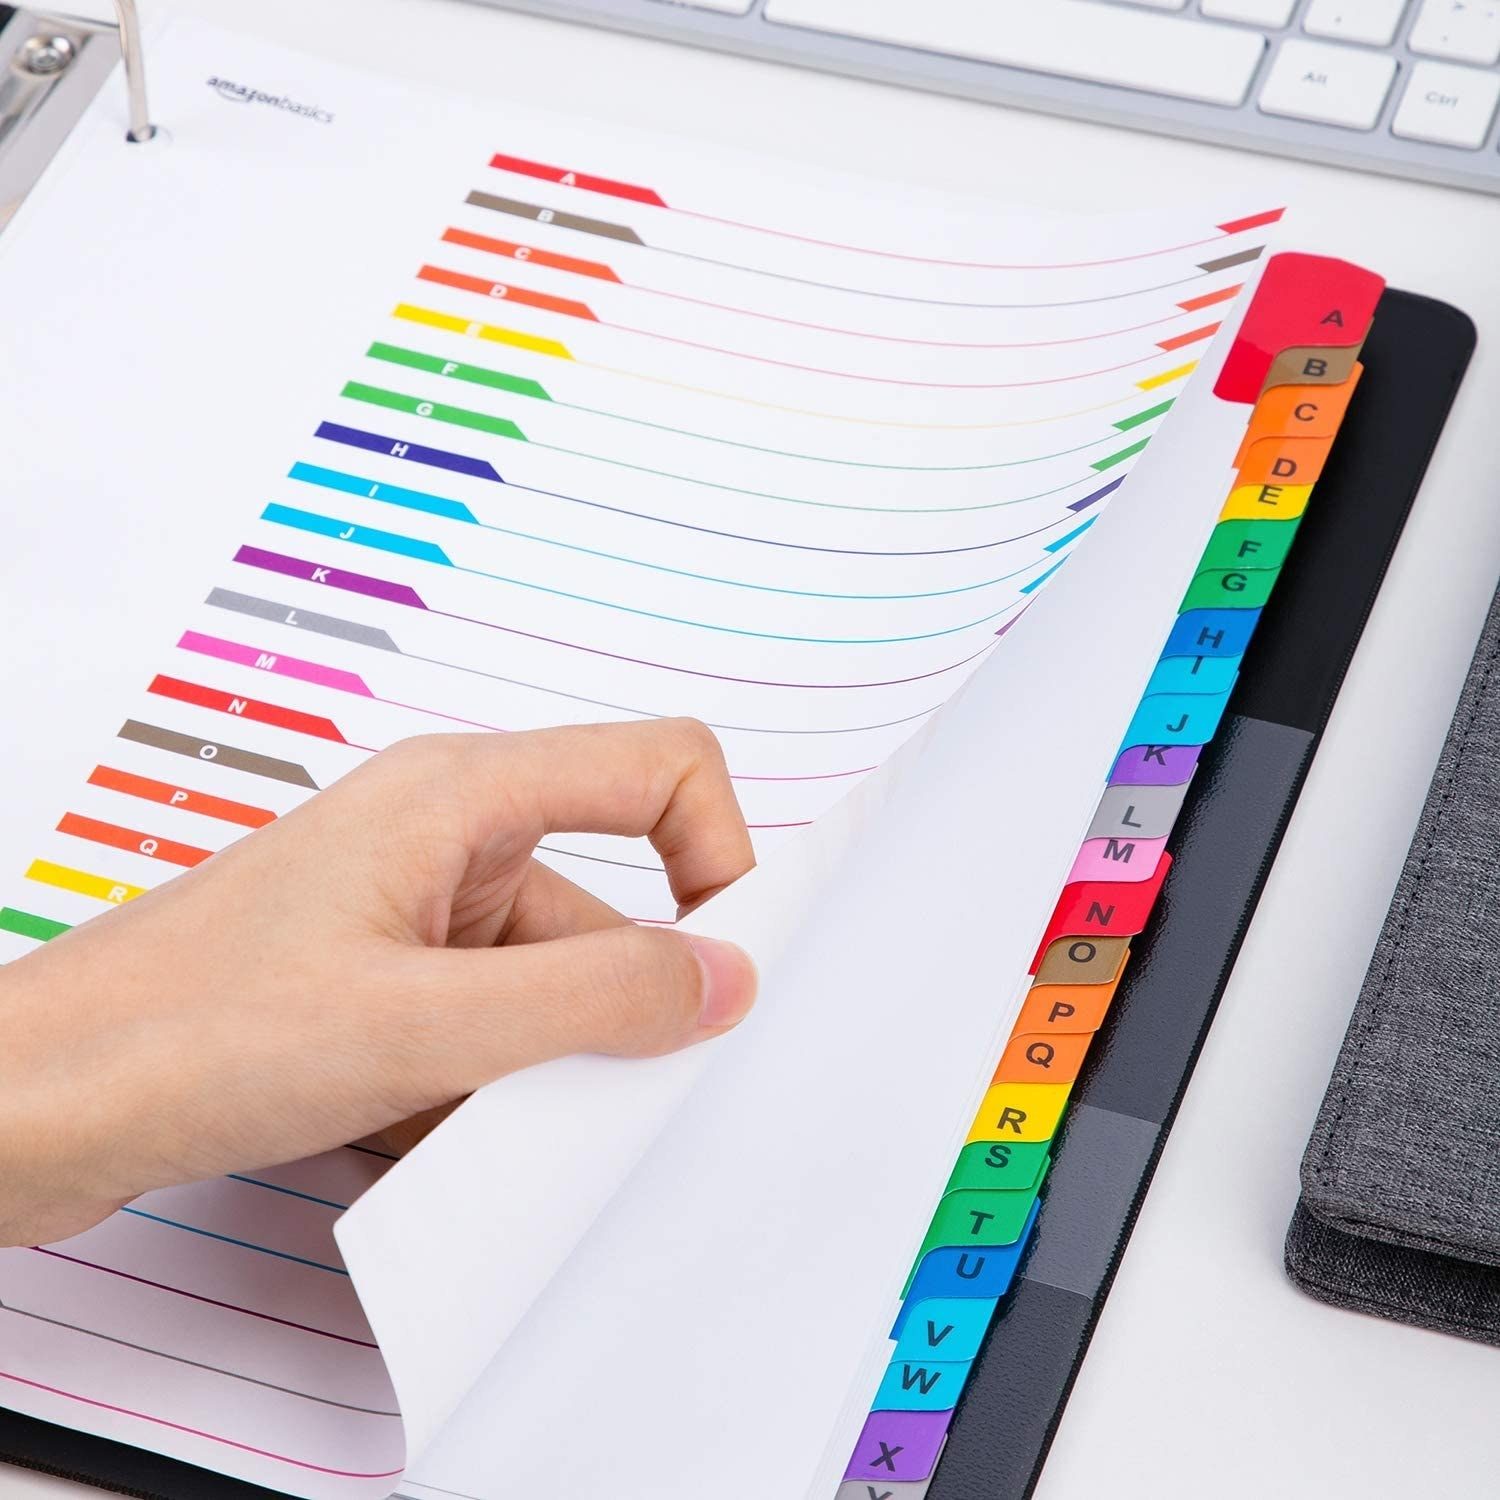 A hand holds the cover page of an index sheet with coloured and lettered corresponding tabs